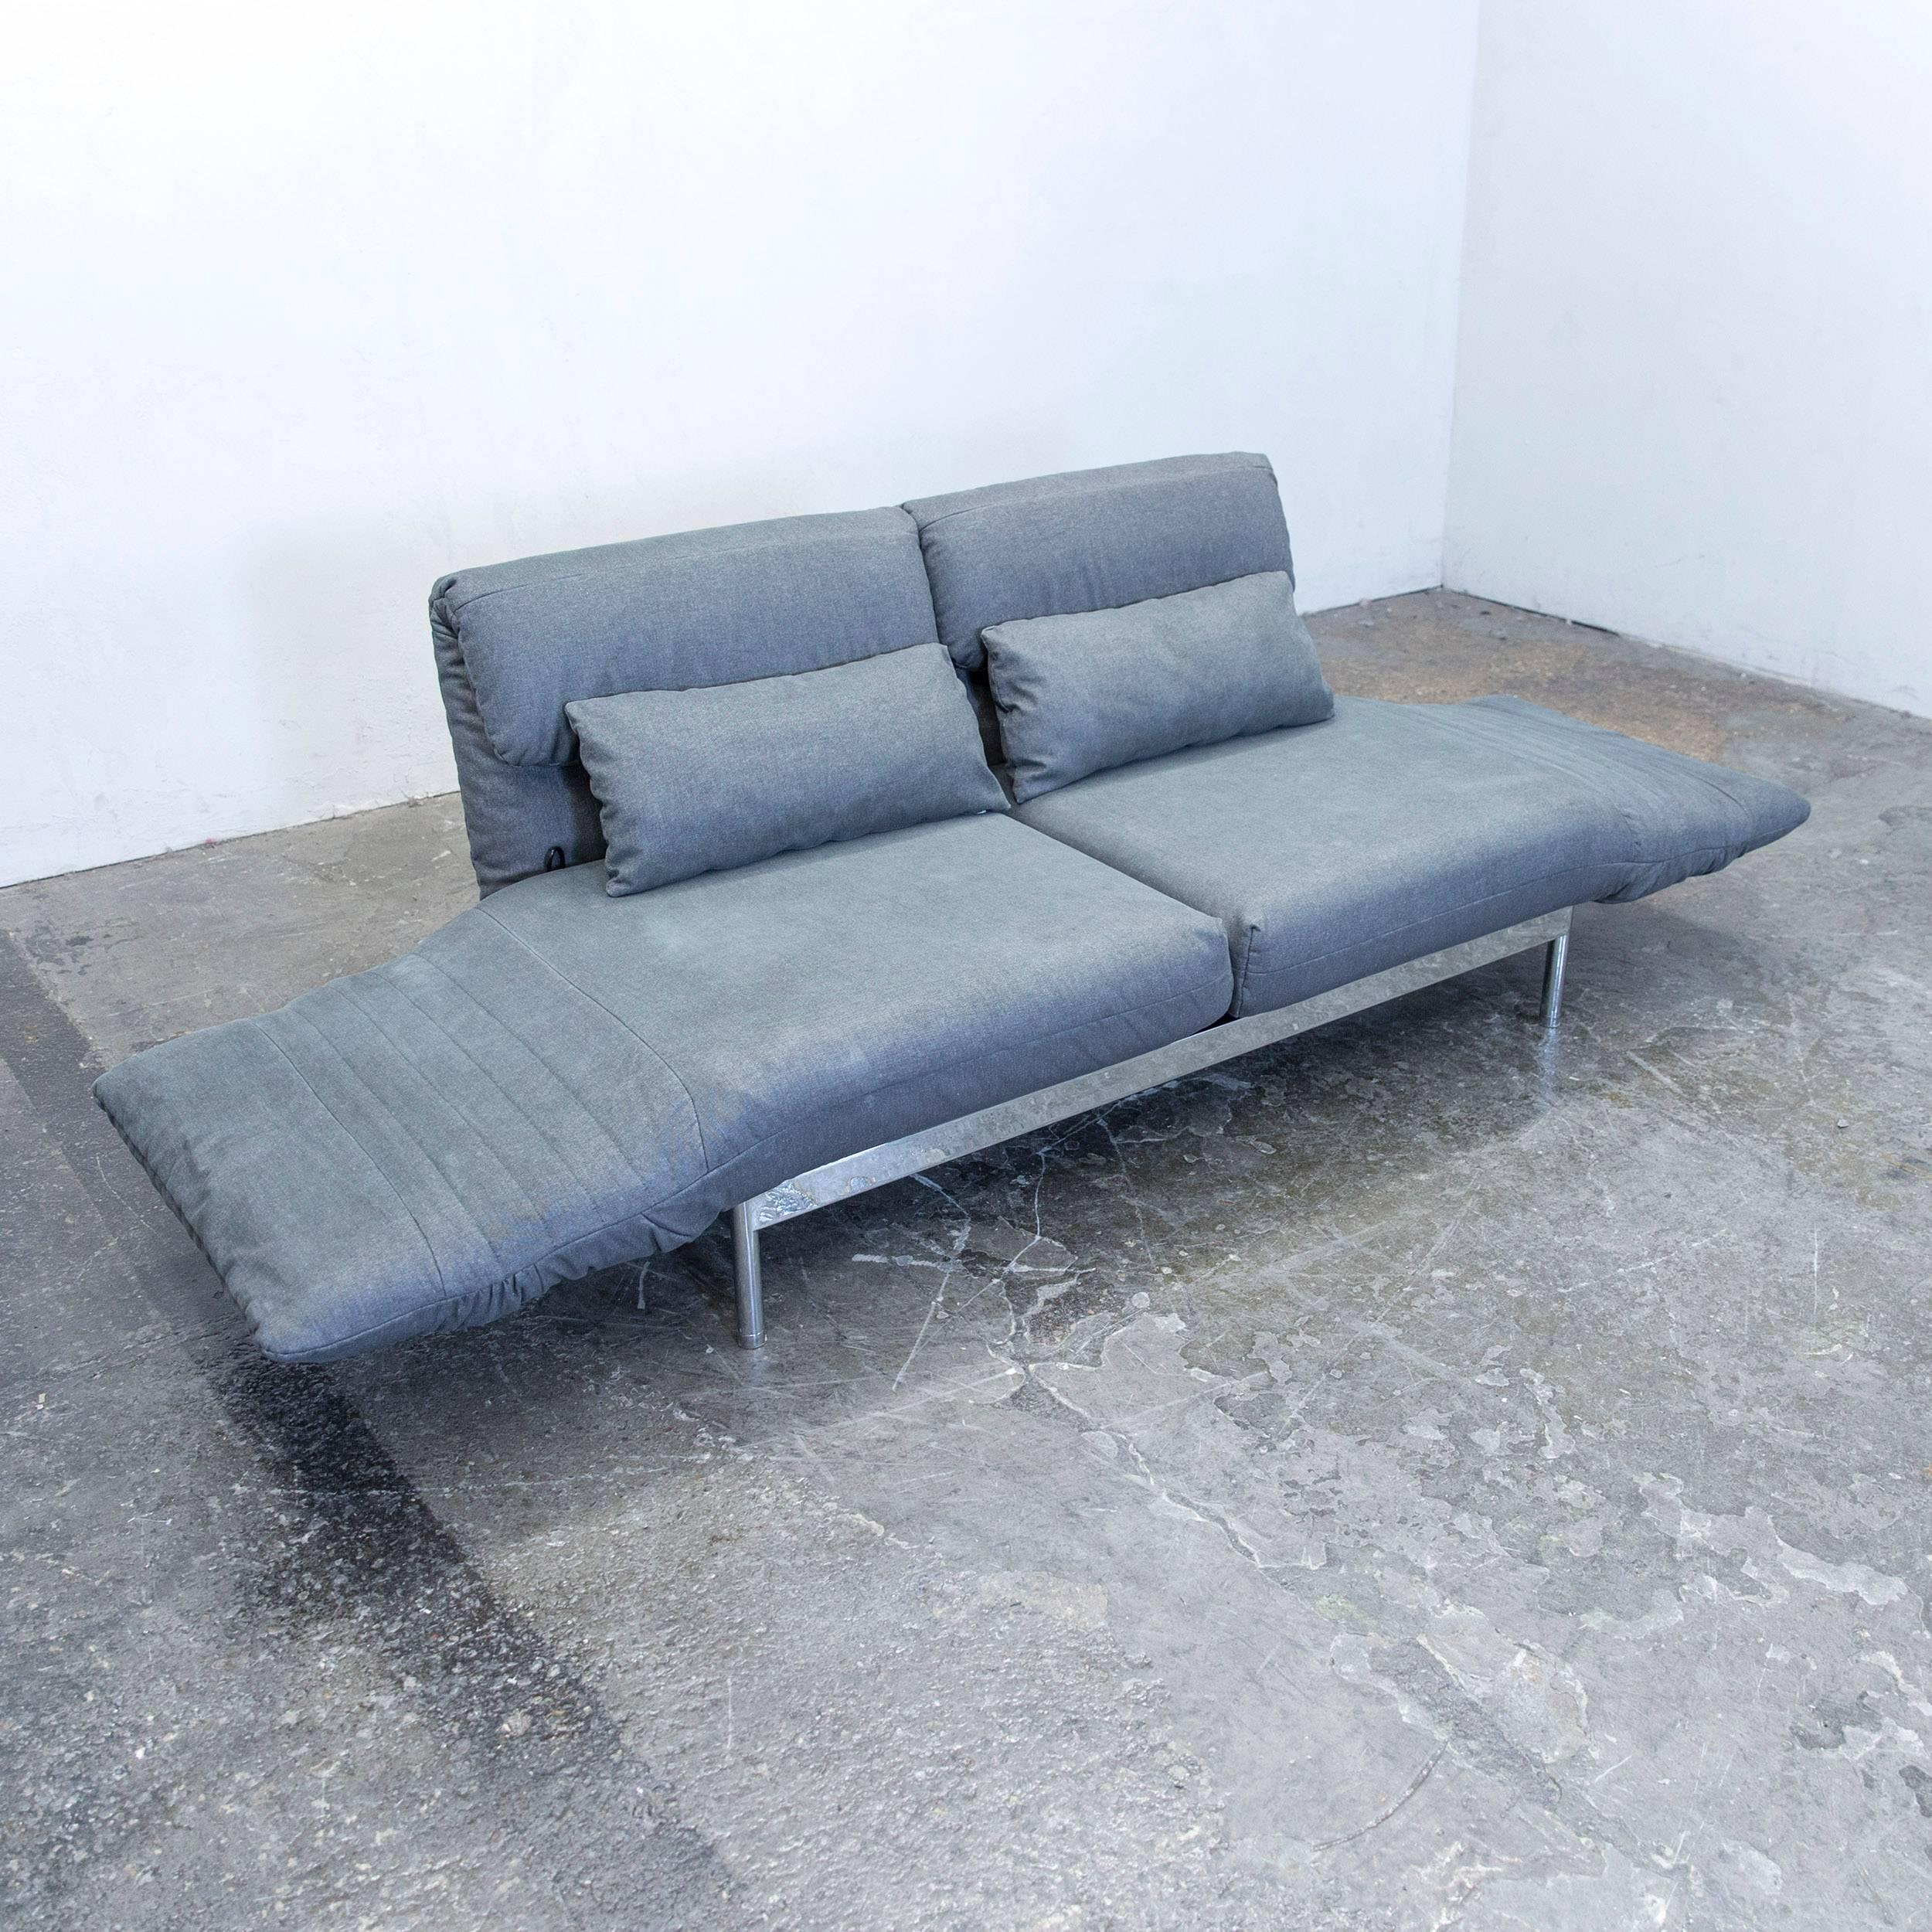 Struktur Couch. Awesome China Im Stil Graue Holzhoch Rckseiten ...